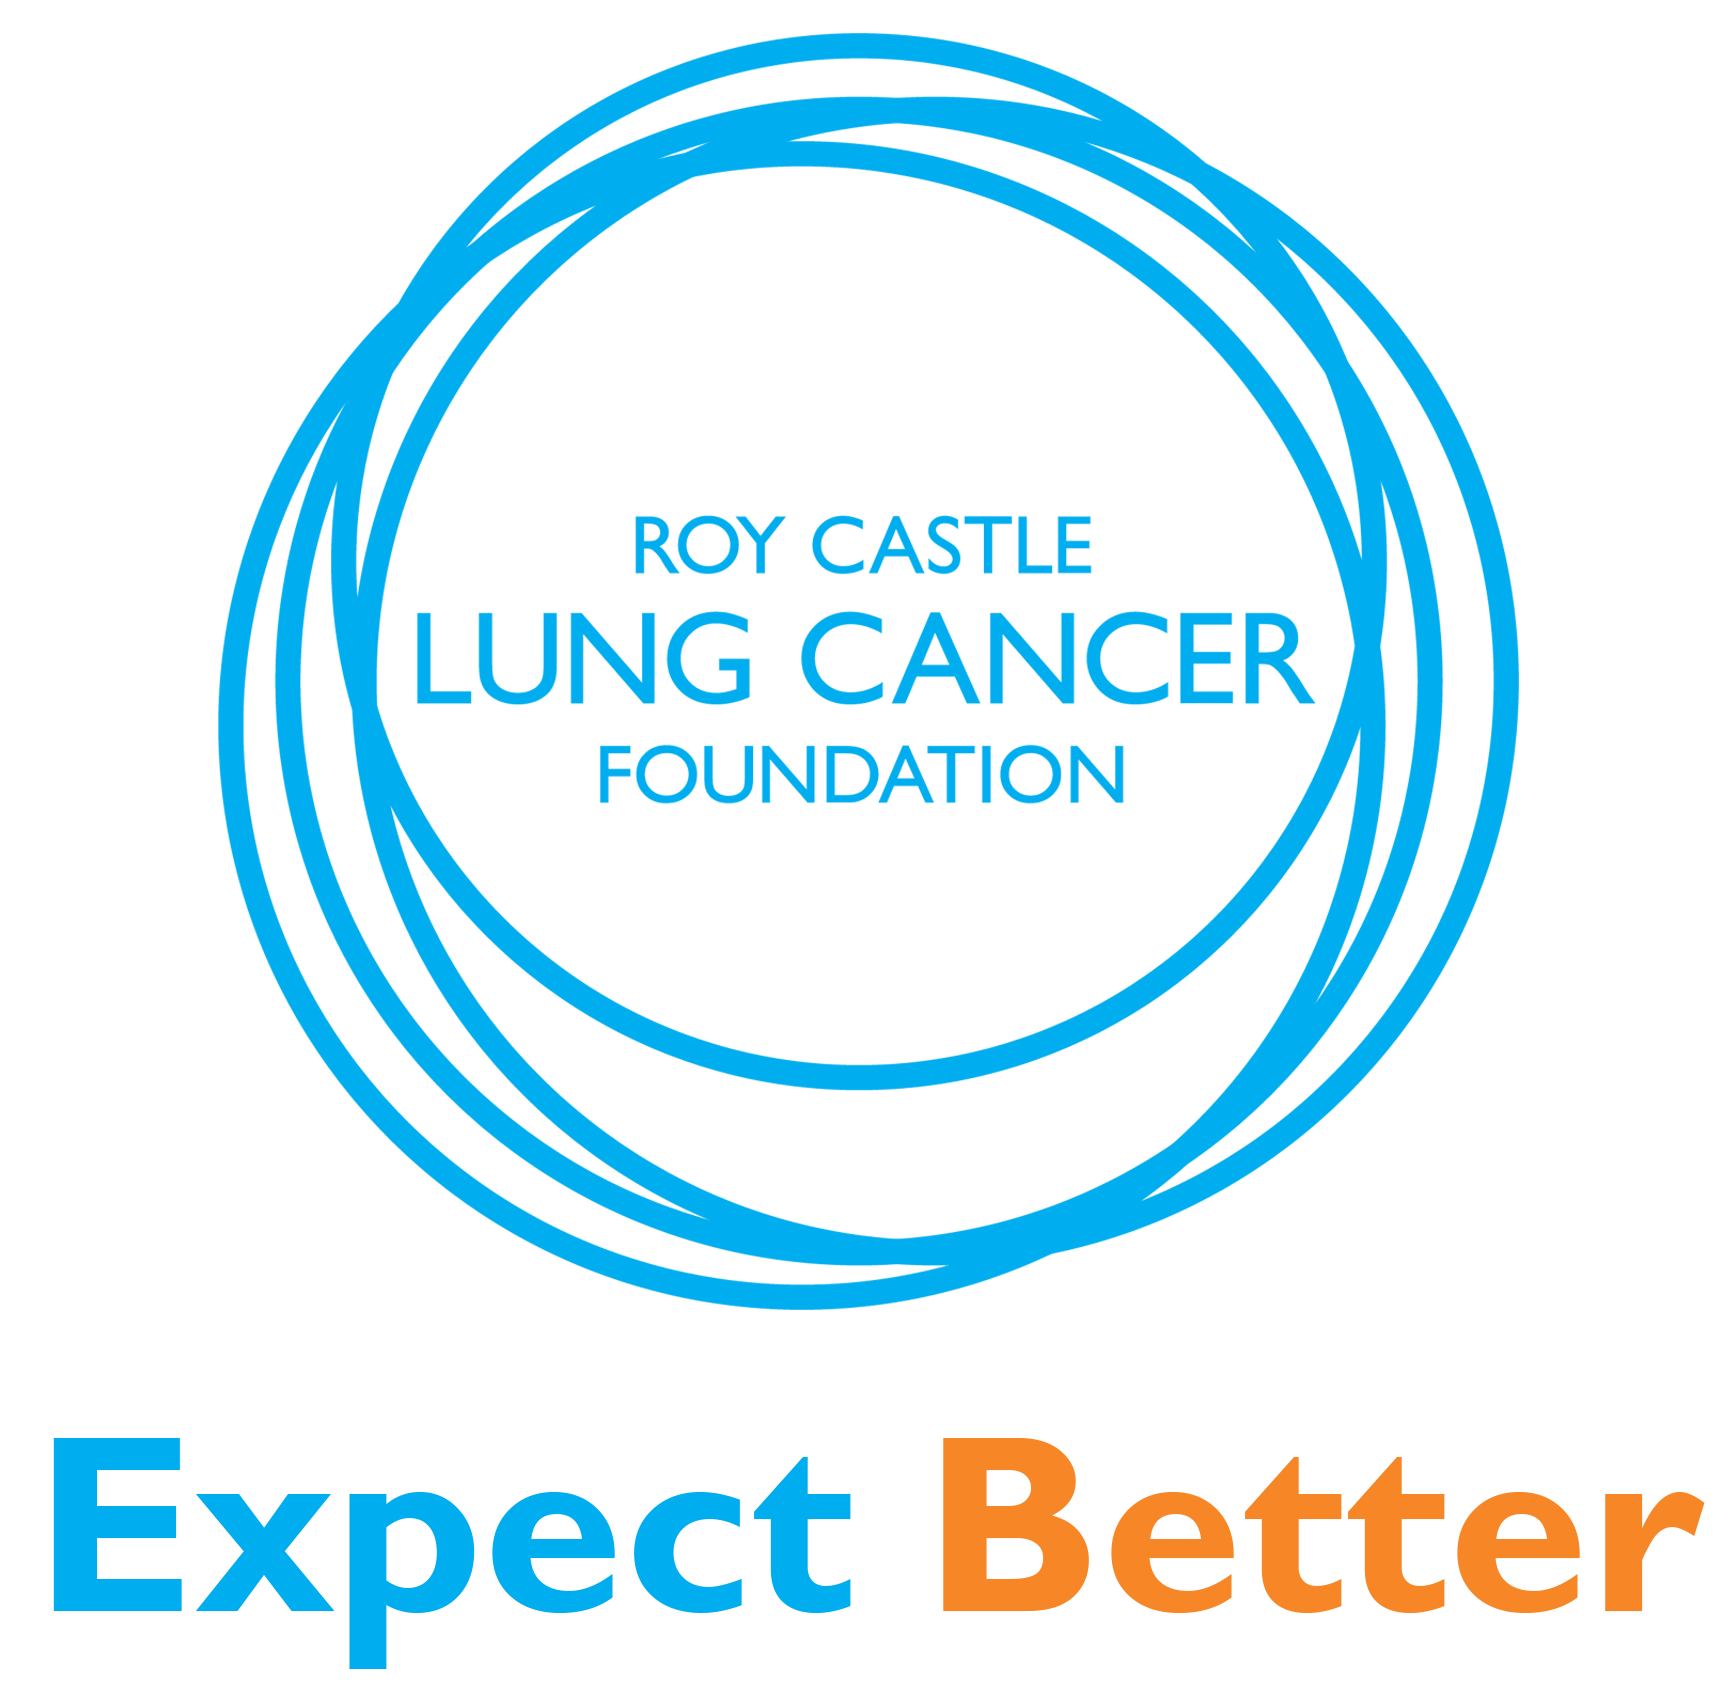 Roy Castle Lung Cancer Foundation - Wikipedia